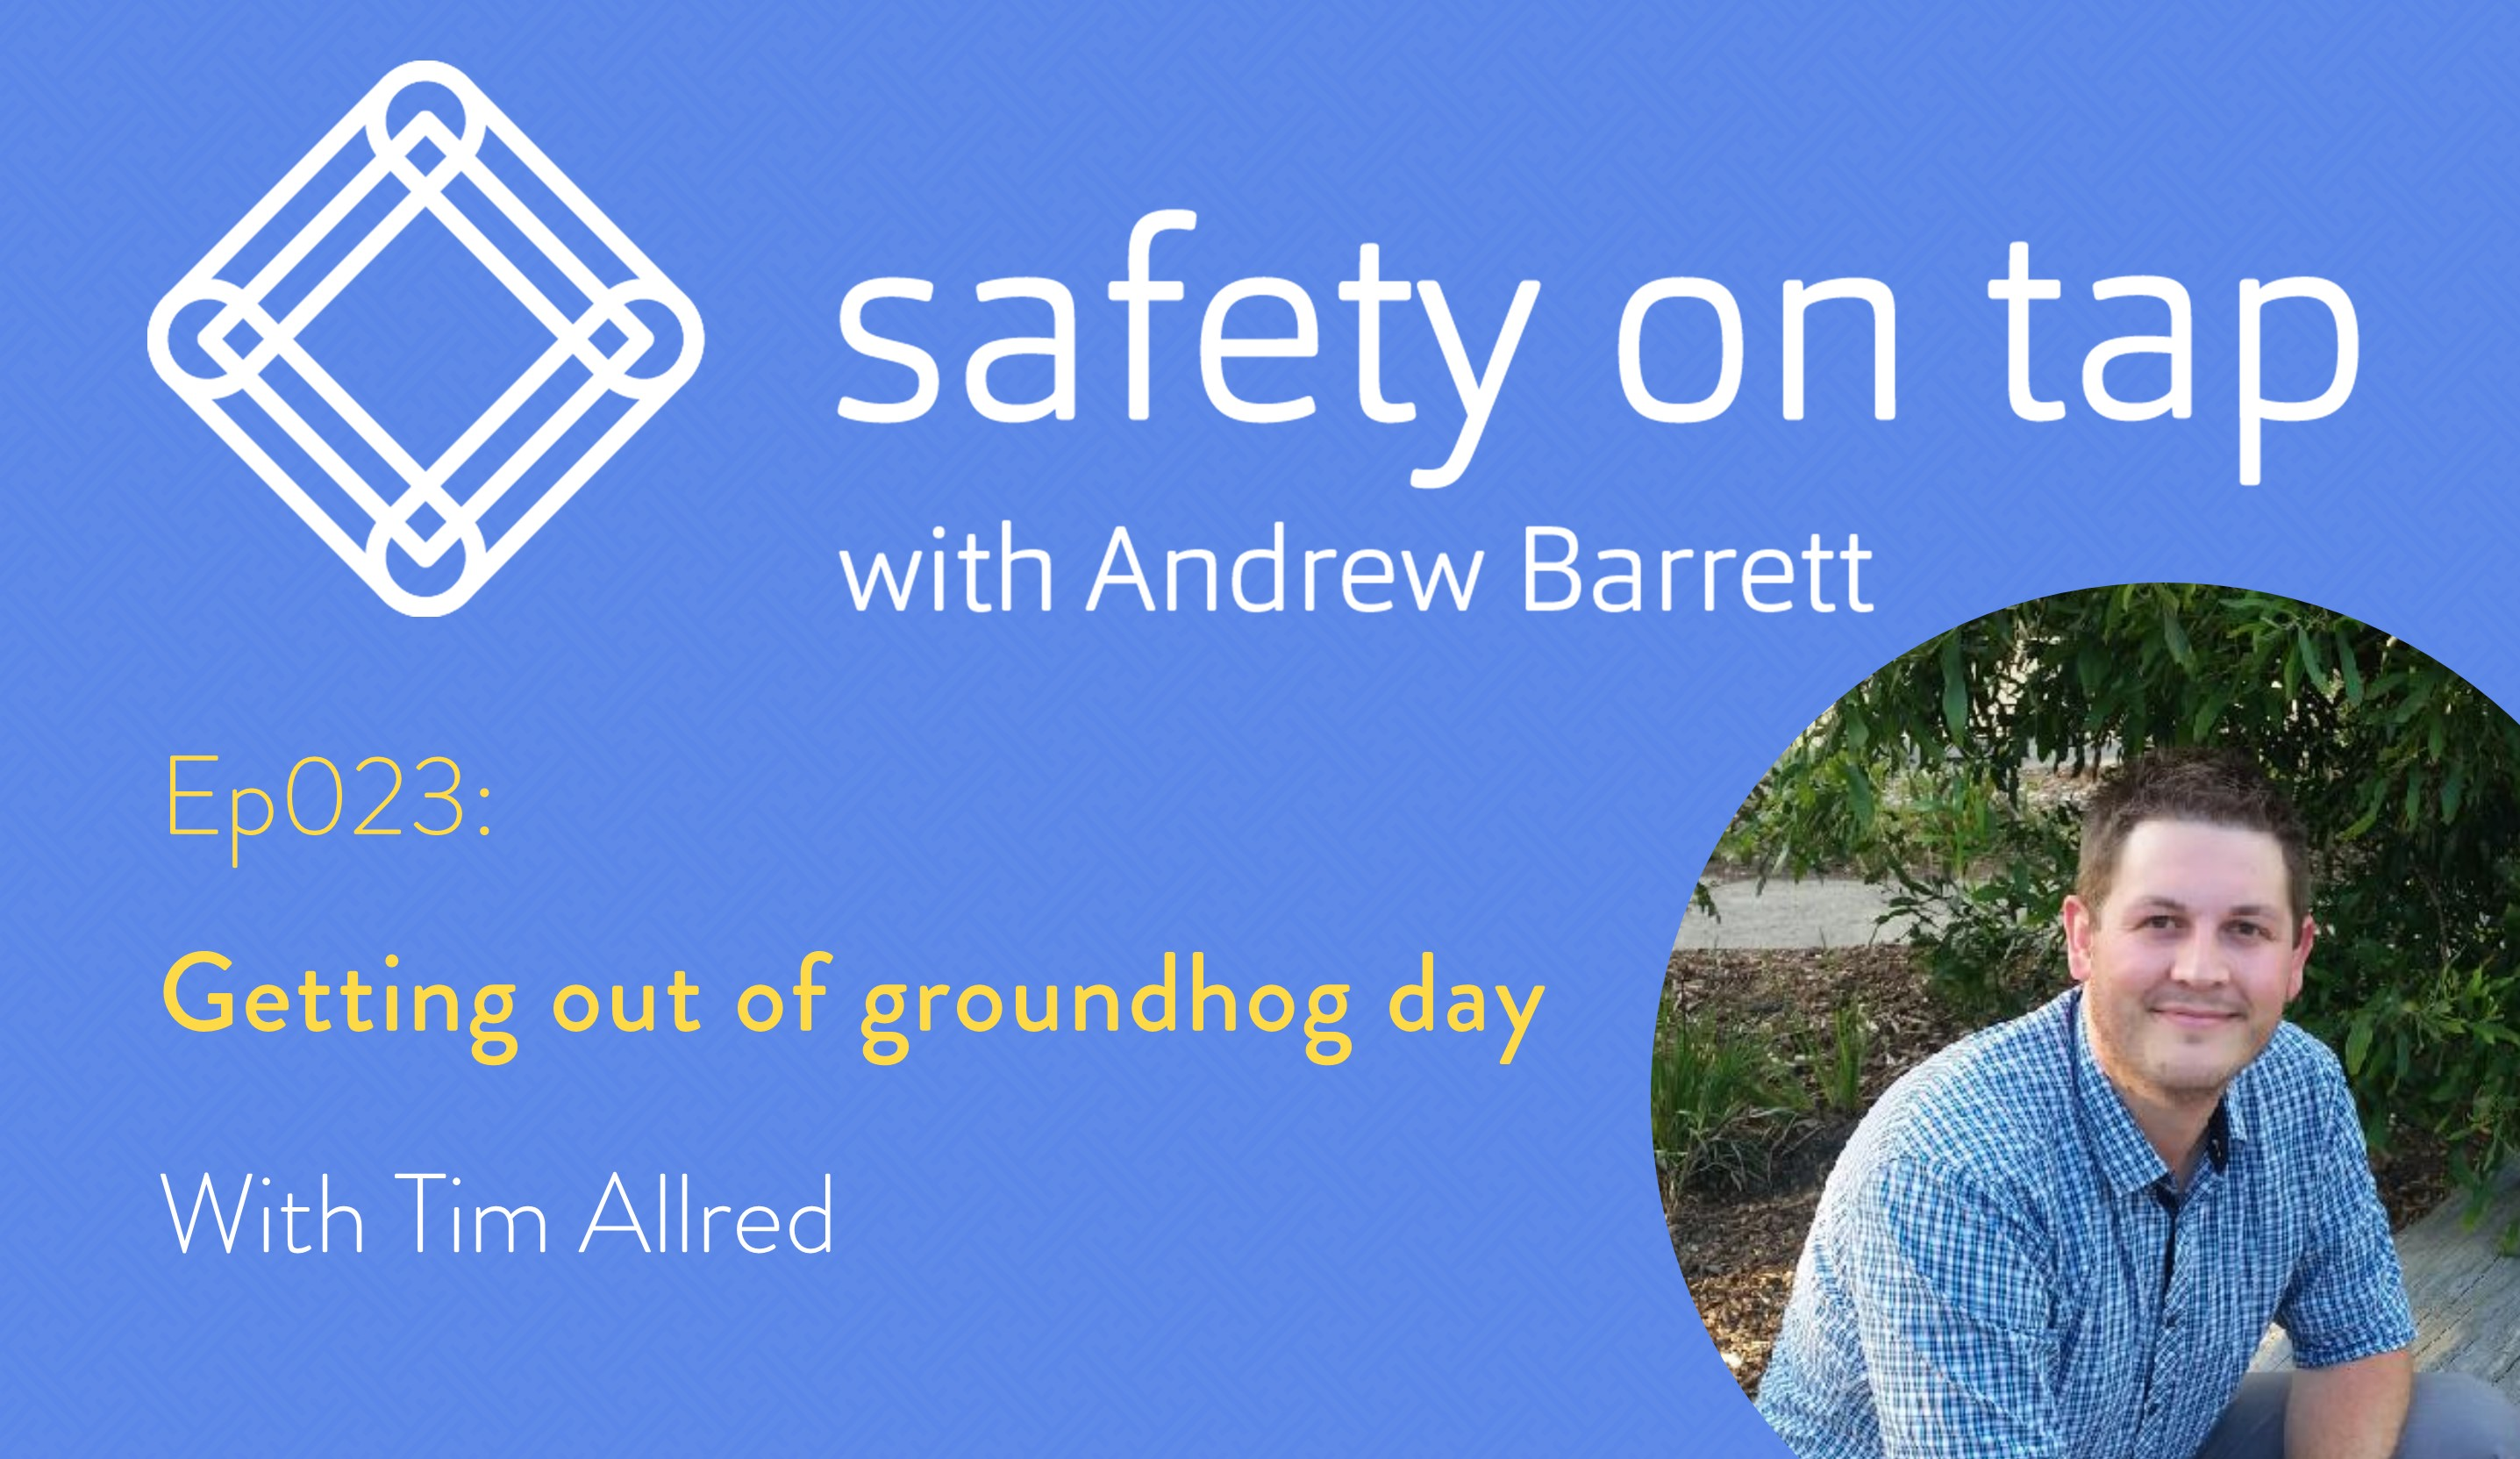 Ep023: Getting out of groundhog day, with Tim Allred